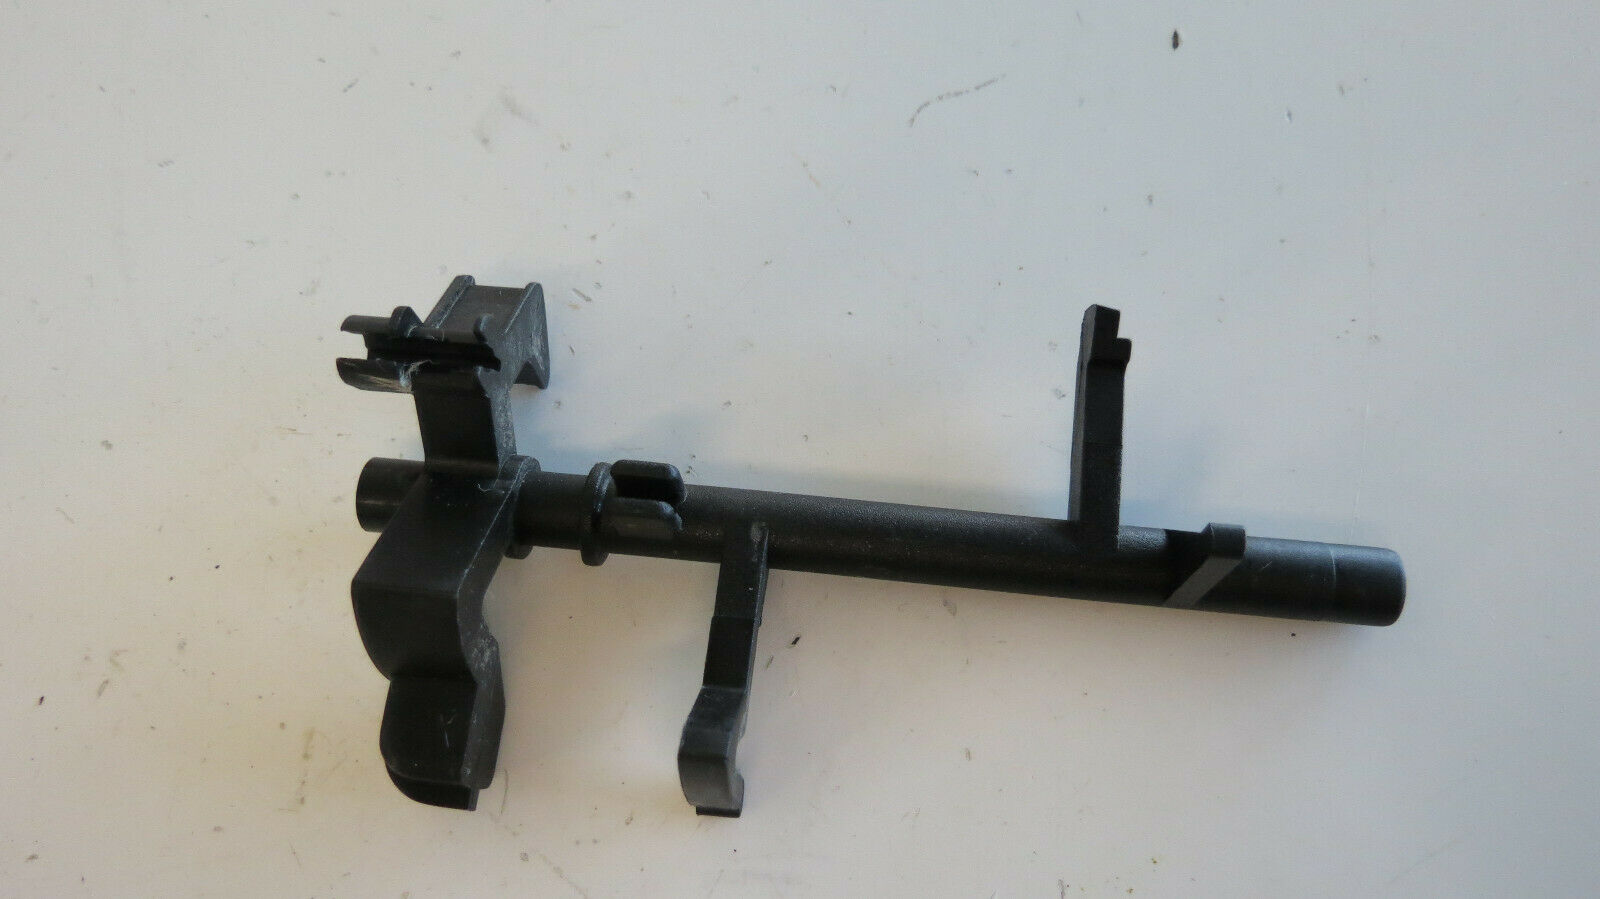 SWITCH SHAFT CHOKE LEVER CONTROL FITS 029 039 MS290 MS310 MS390 CHAINSAWS S5